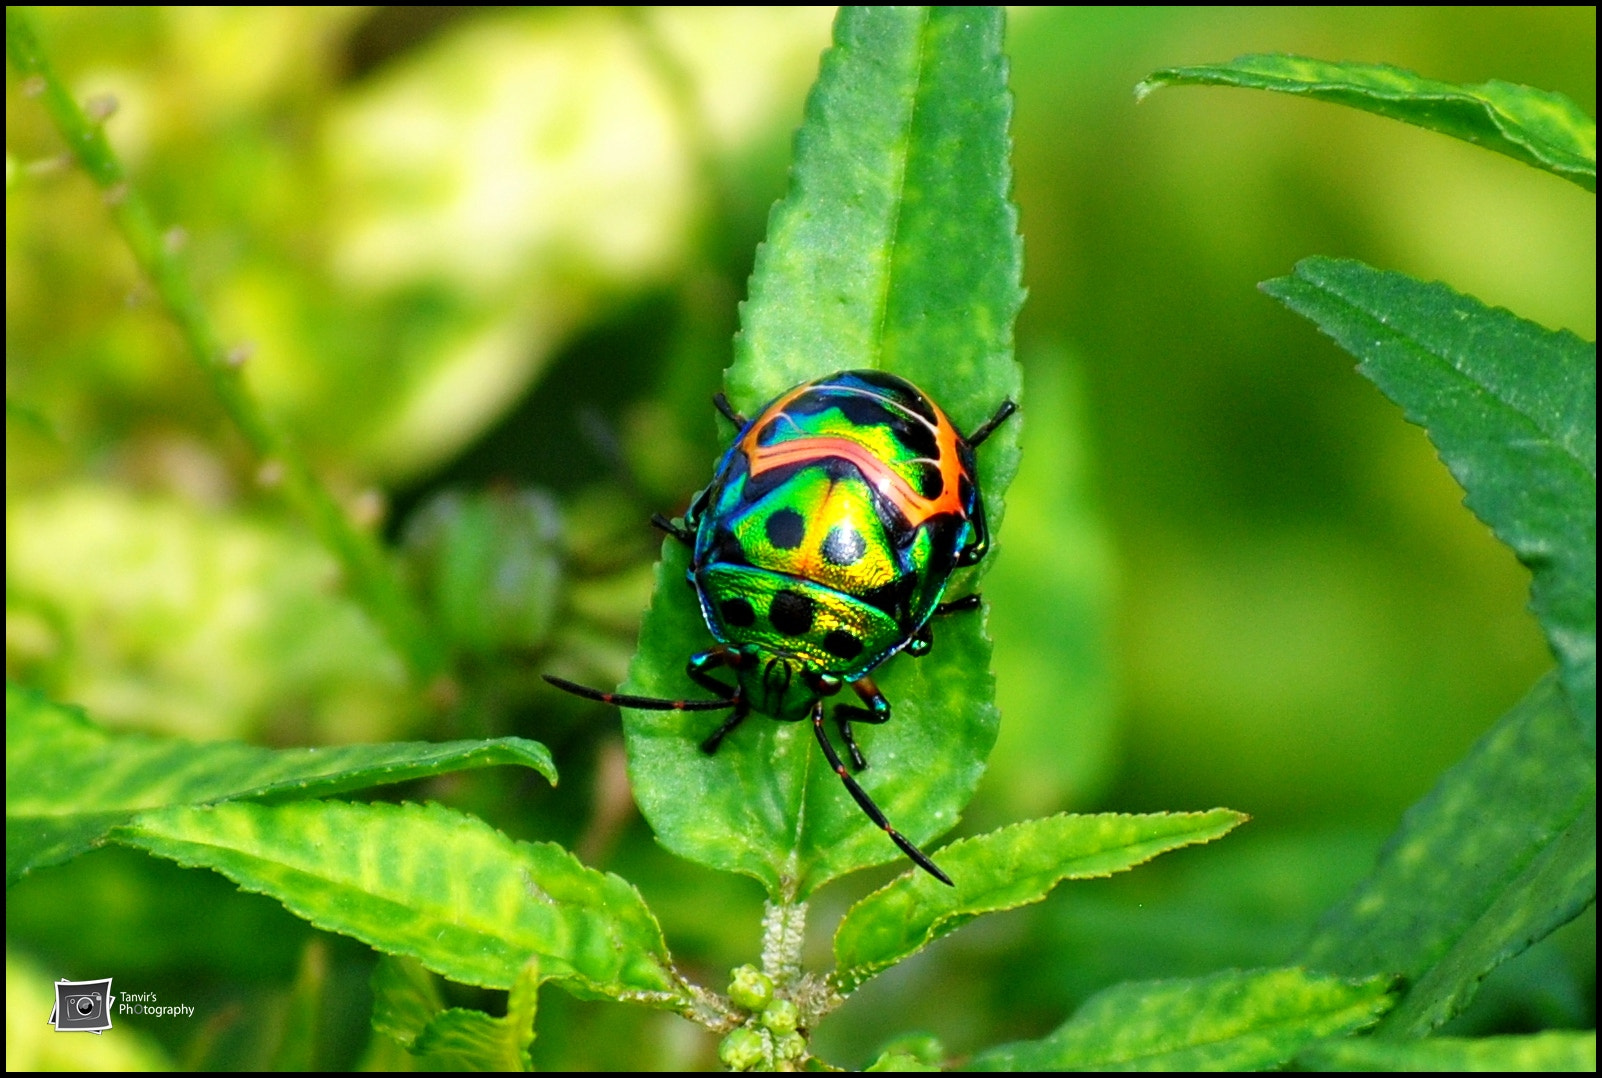 Photograph Insect by Tanvir Khan on 500px